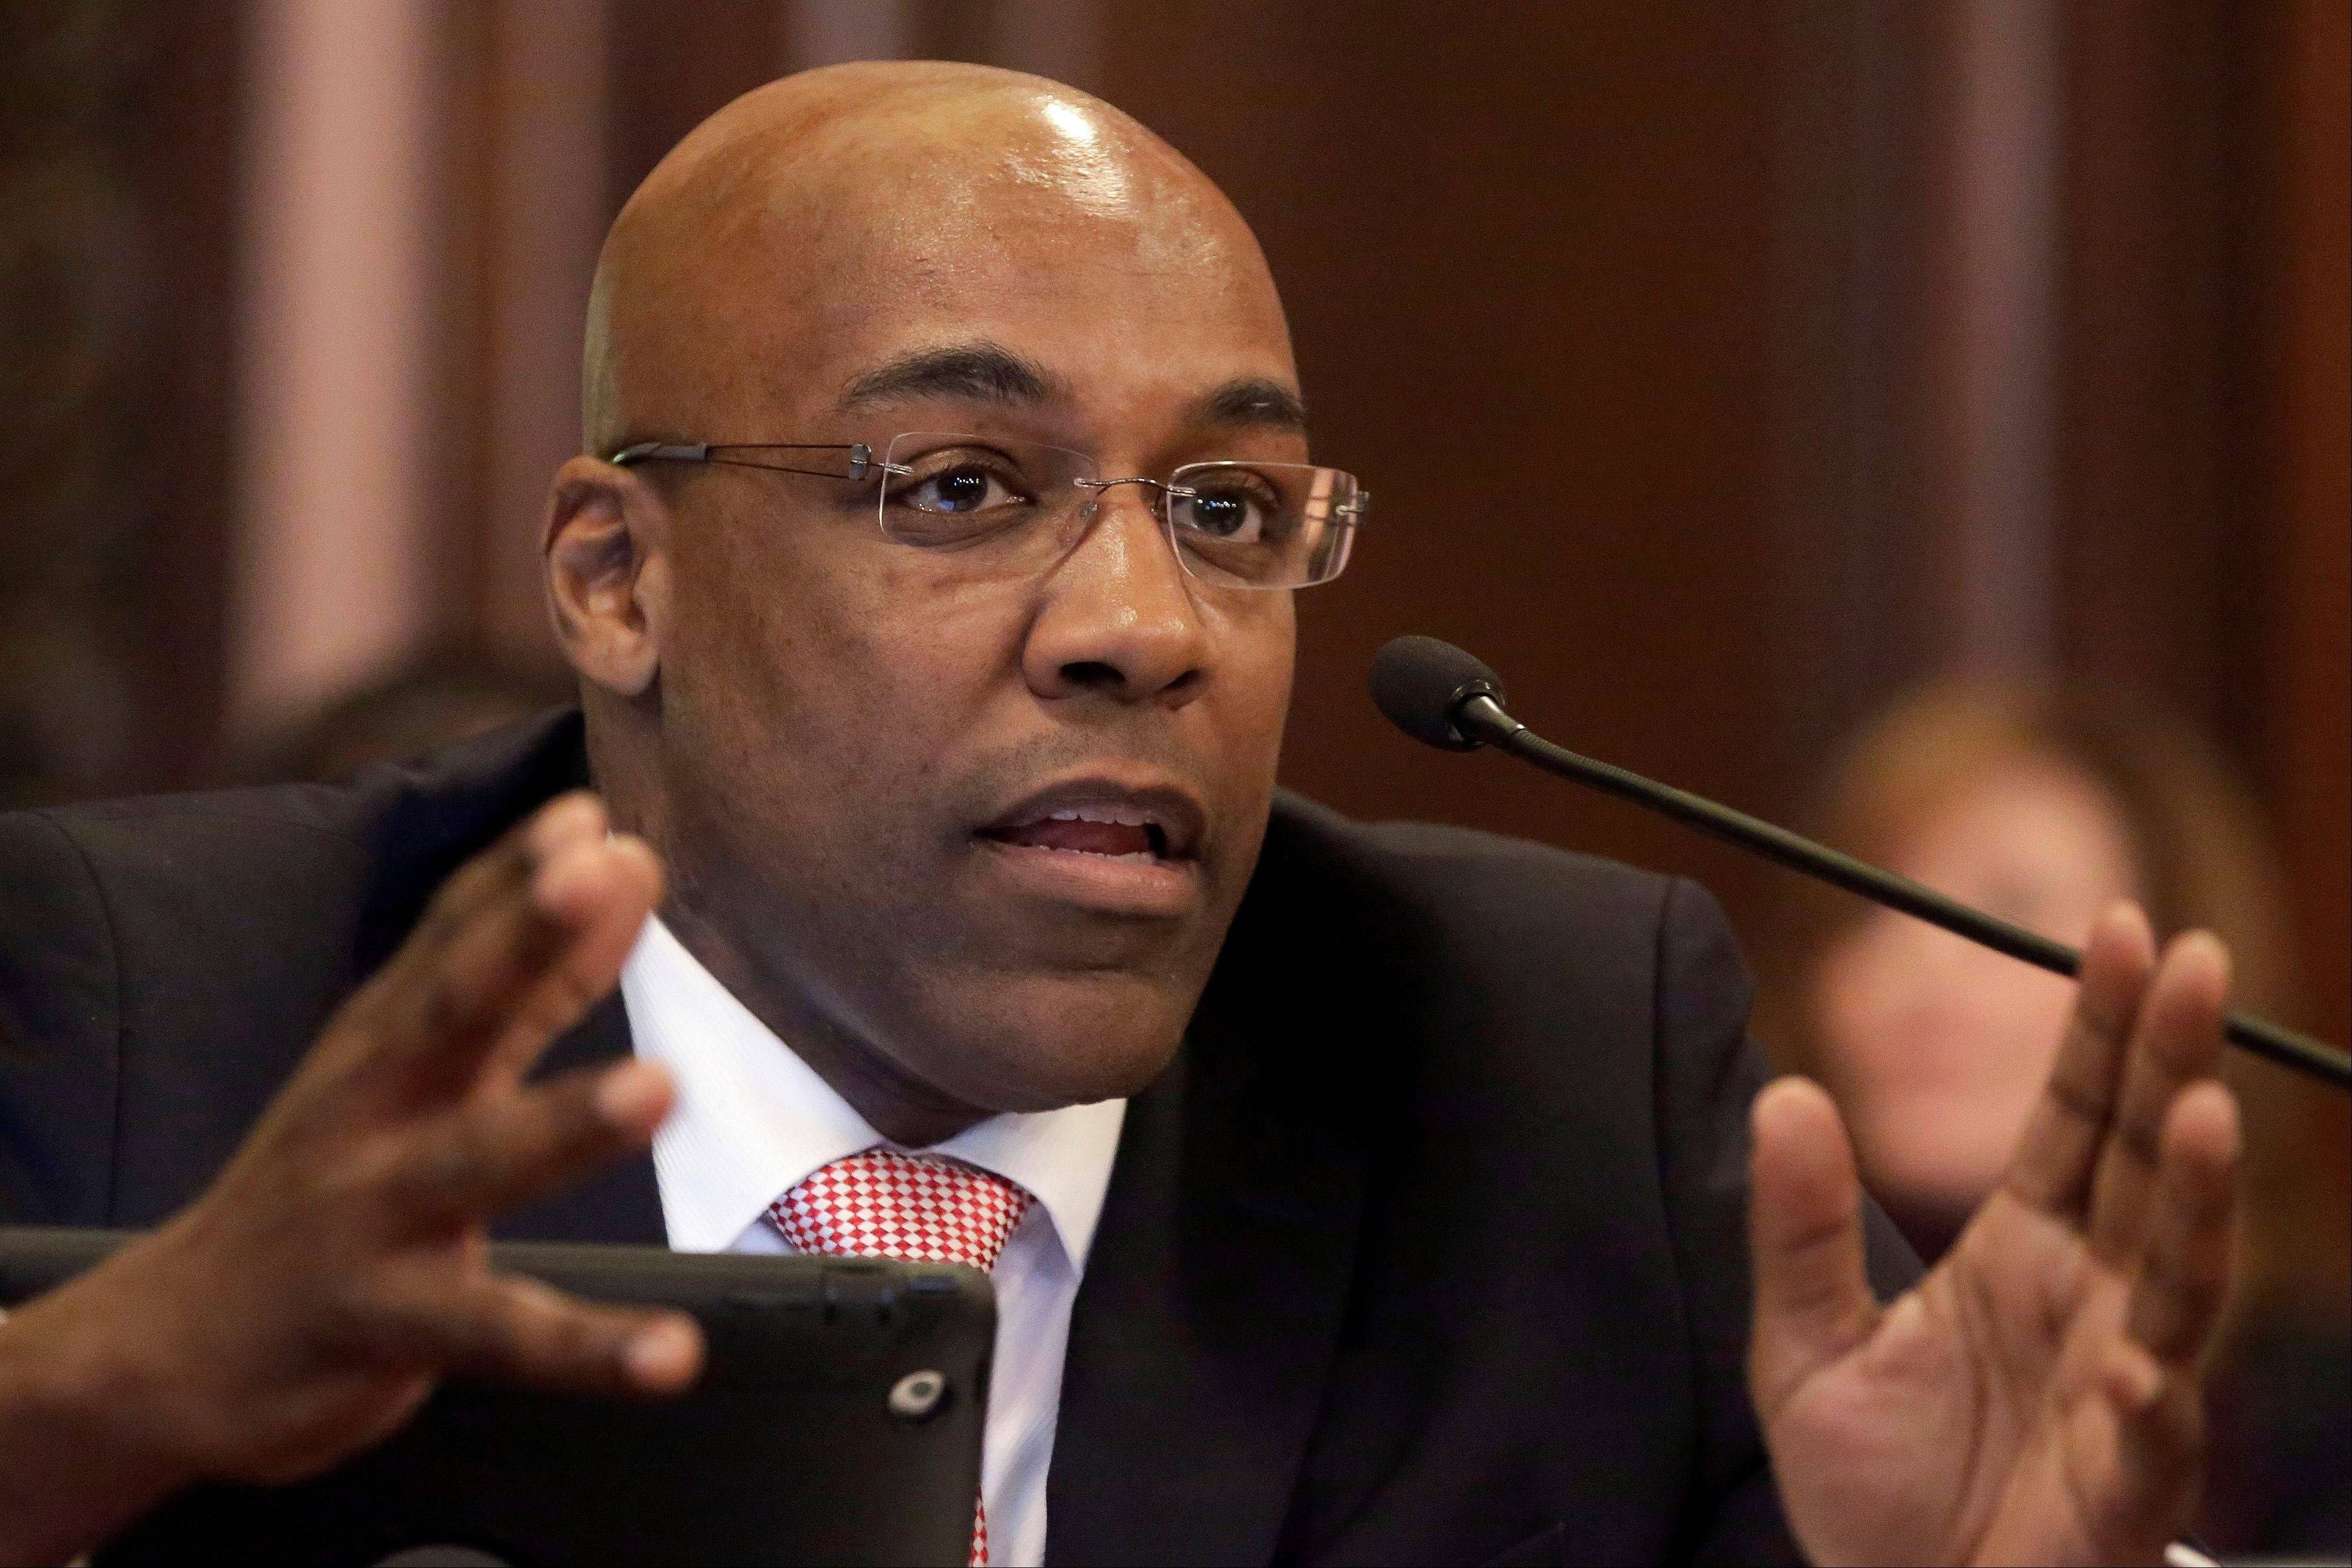 State Sen. Kwame Raoul, a Chicago Democrat, says members of the National Rifle Association are using intimidation to derail his concealed-carry legislation.